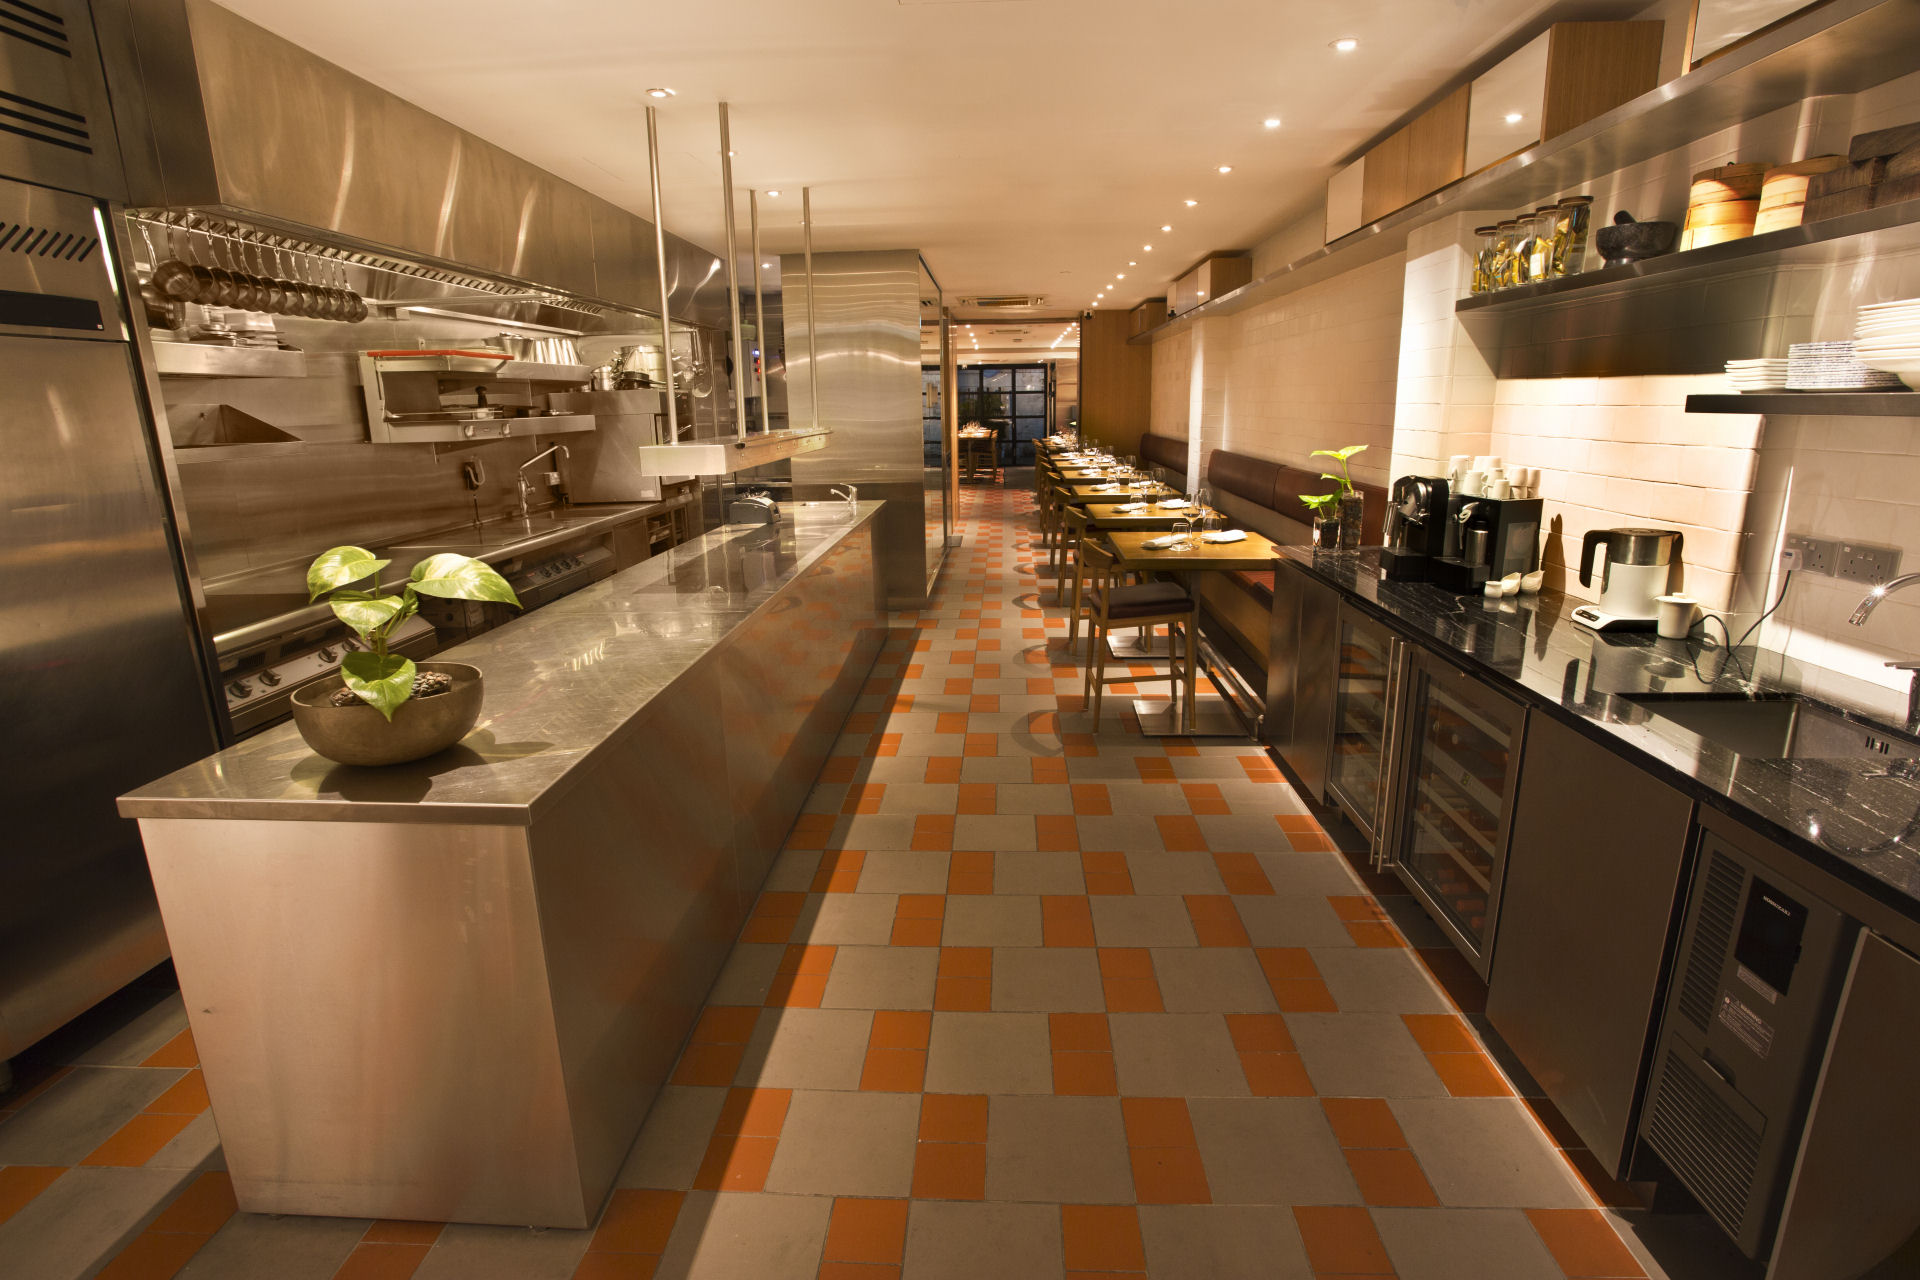 The Kitchen at Bacchanalia in Singapore